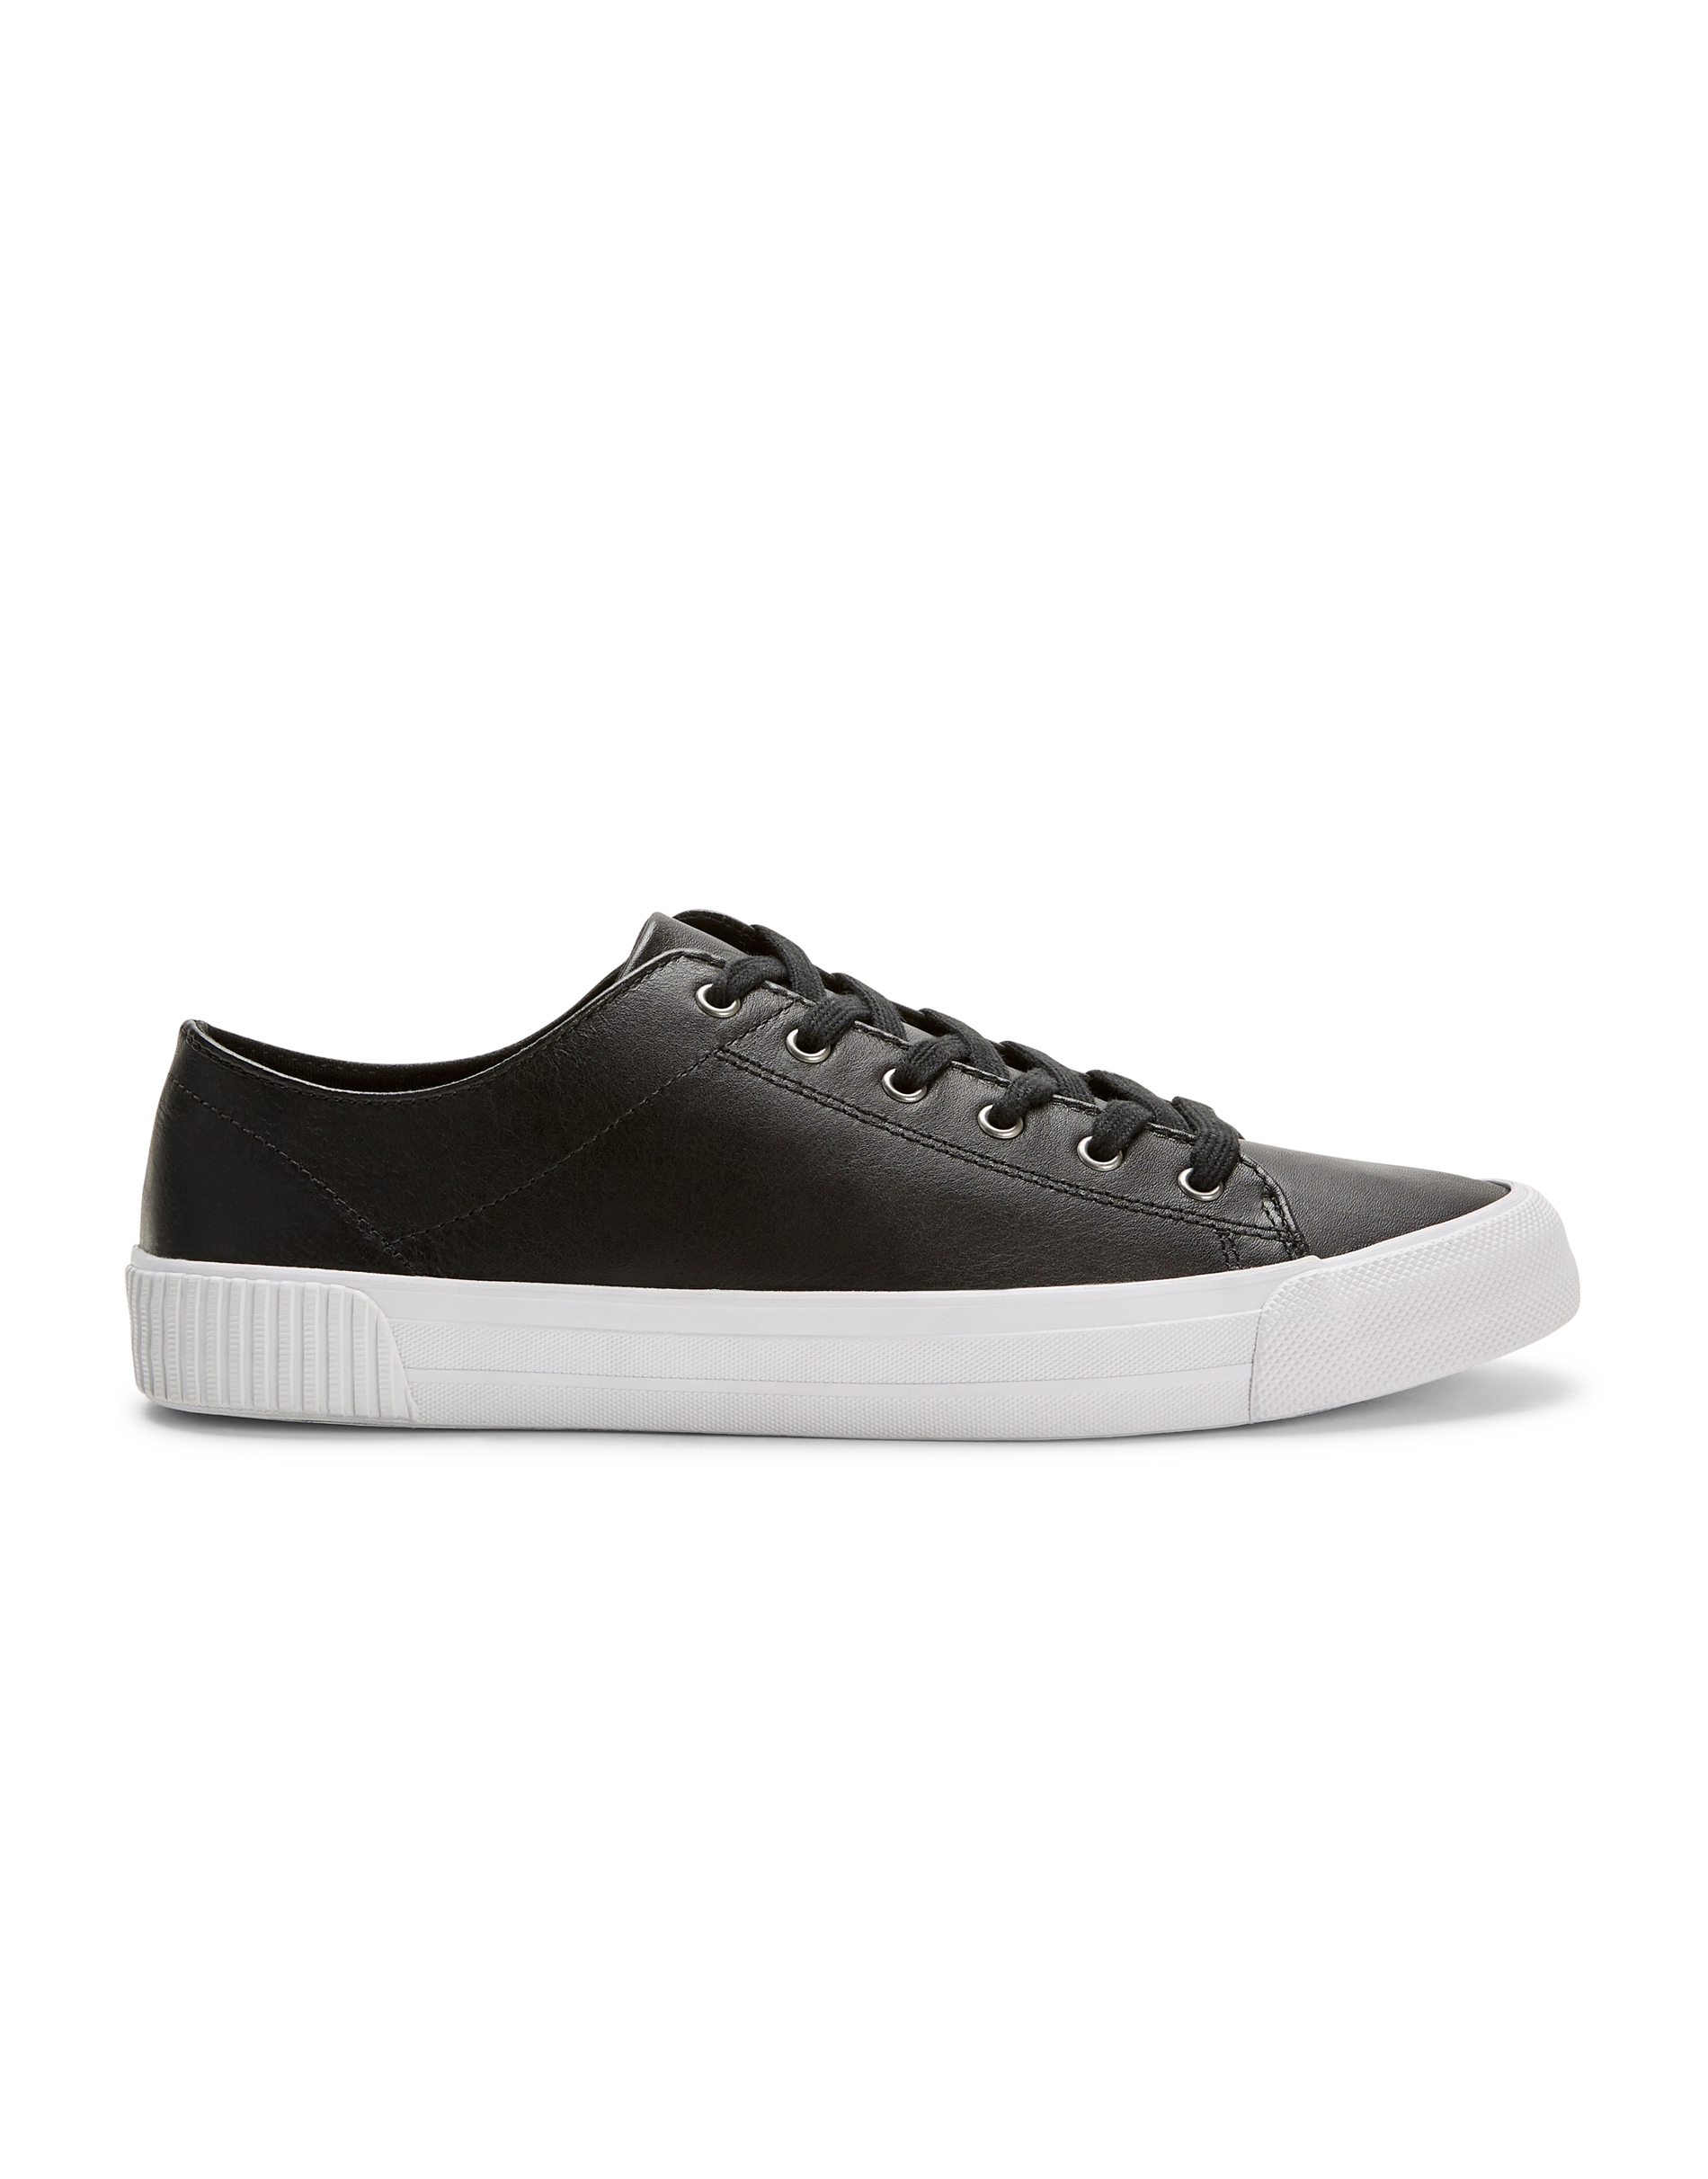 MVP Black Leather Plimsoll